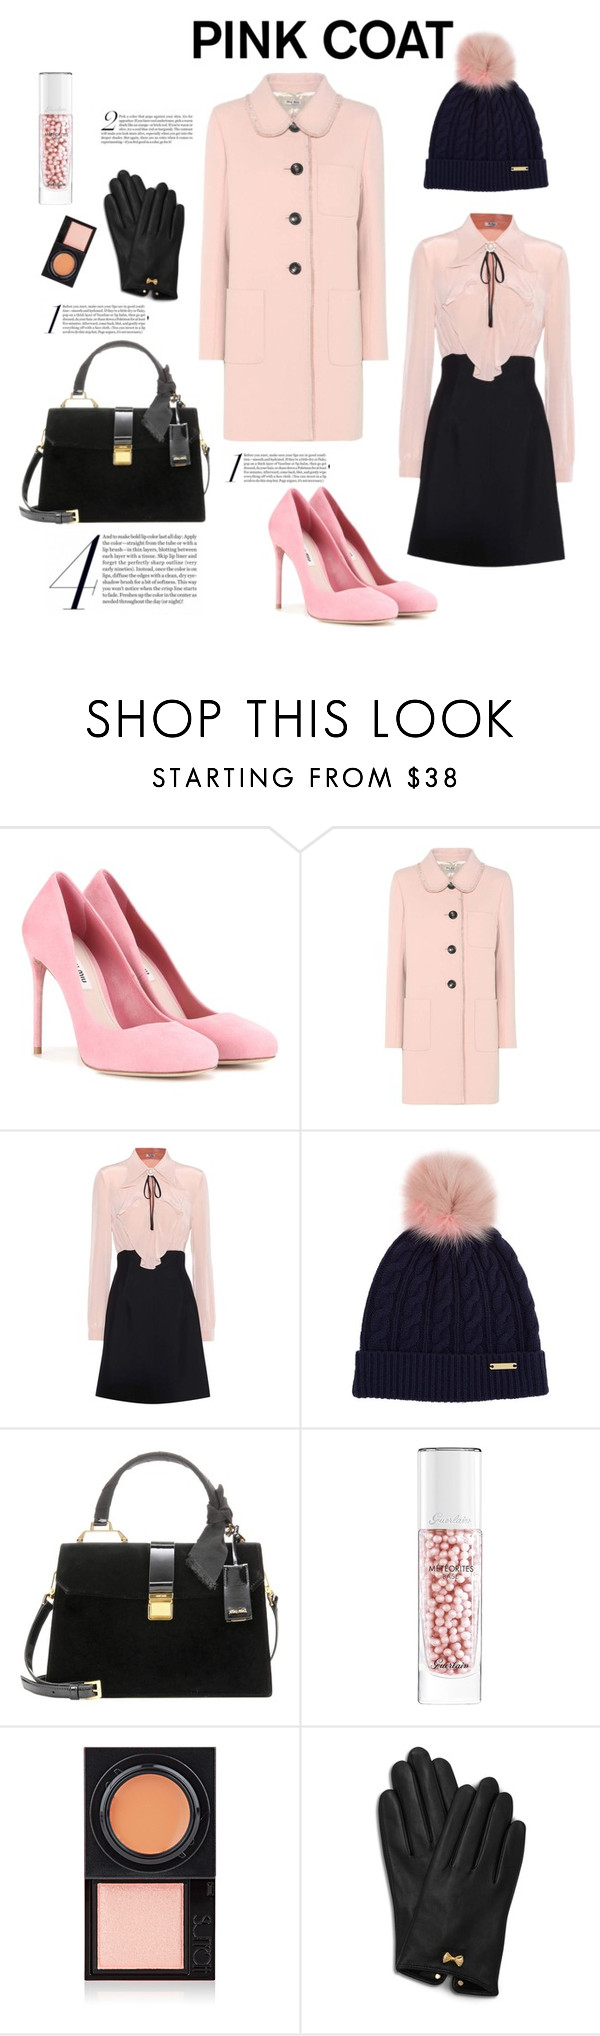 """""""Pink Miu Miu"""" by emmyt94 ❤ liked on Polyvore featuring Miu Miu, Burberry, Guerlain, Surratt and Ted Baker"""